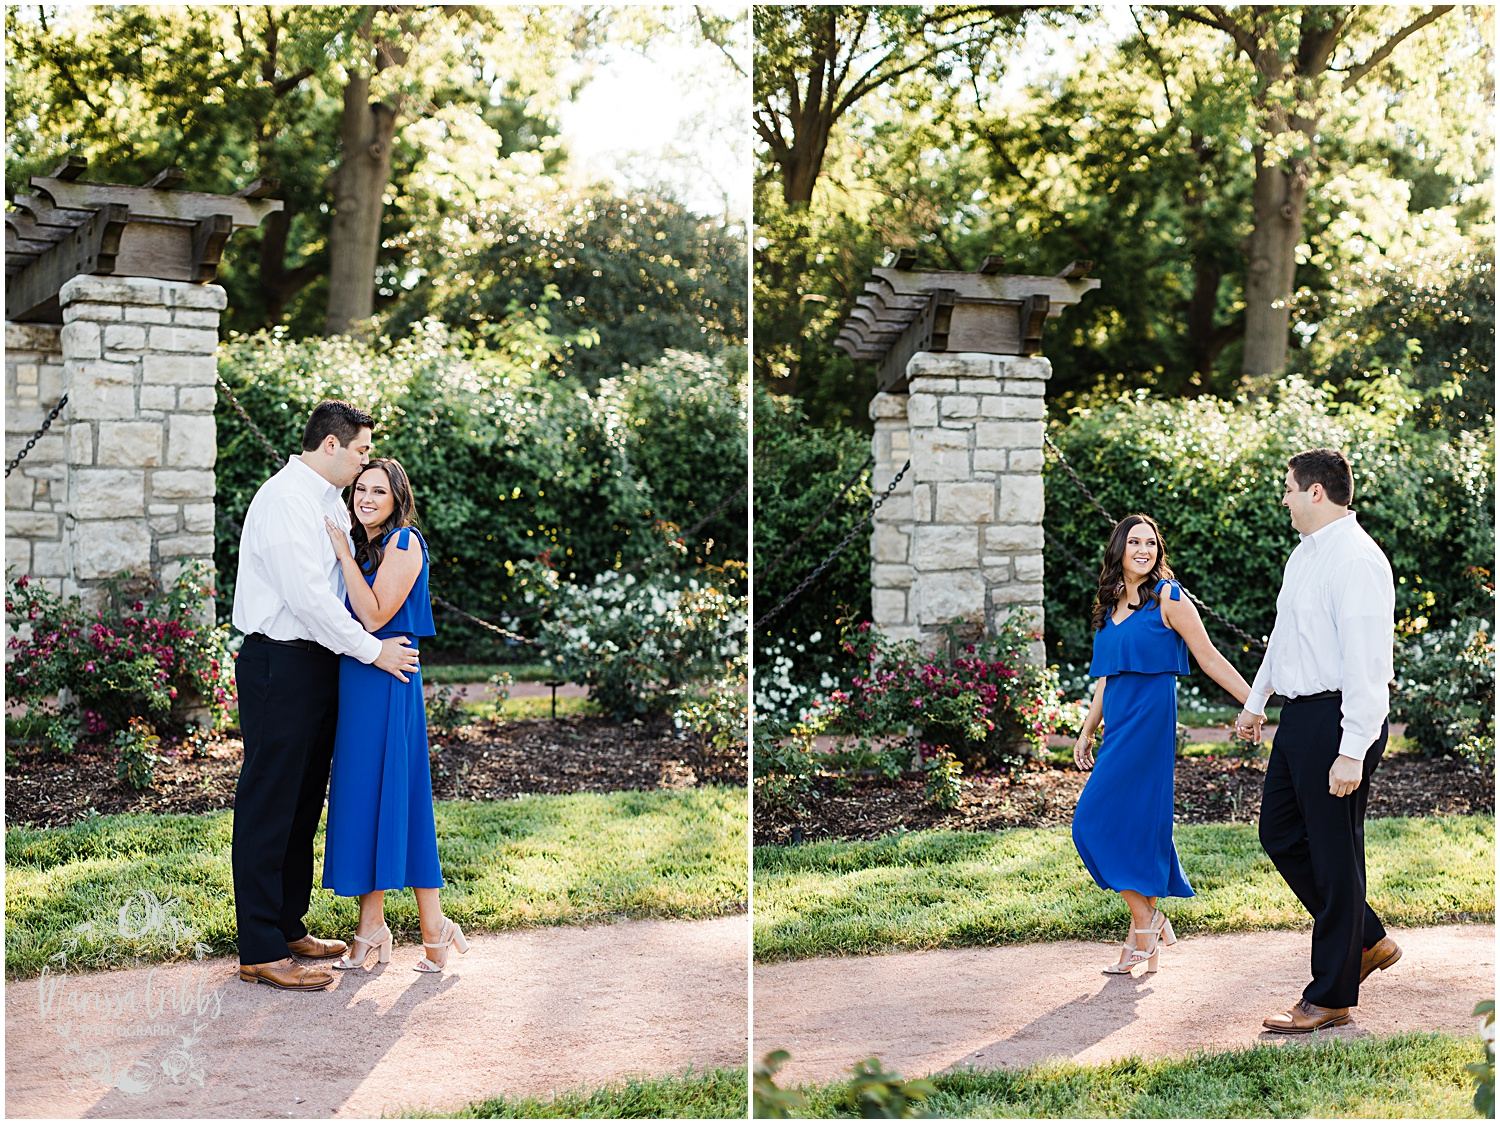 MORGAN & KEVIN ENGAGEMENT BLOG | MARISSA CRIBBS PHOTOGRAPHY_8267.jpg